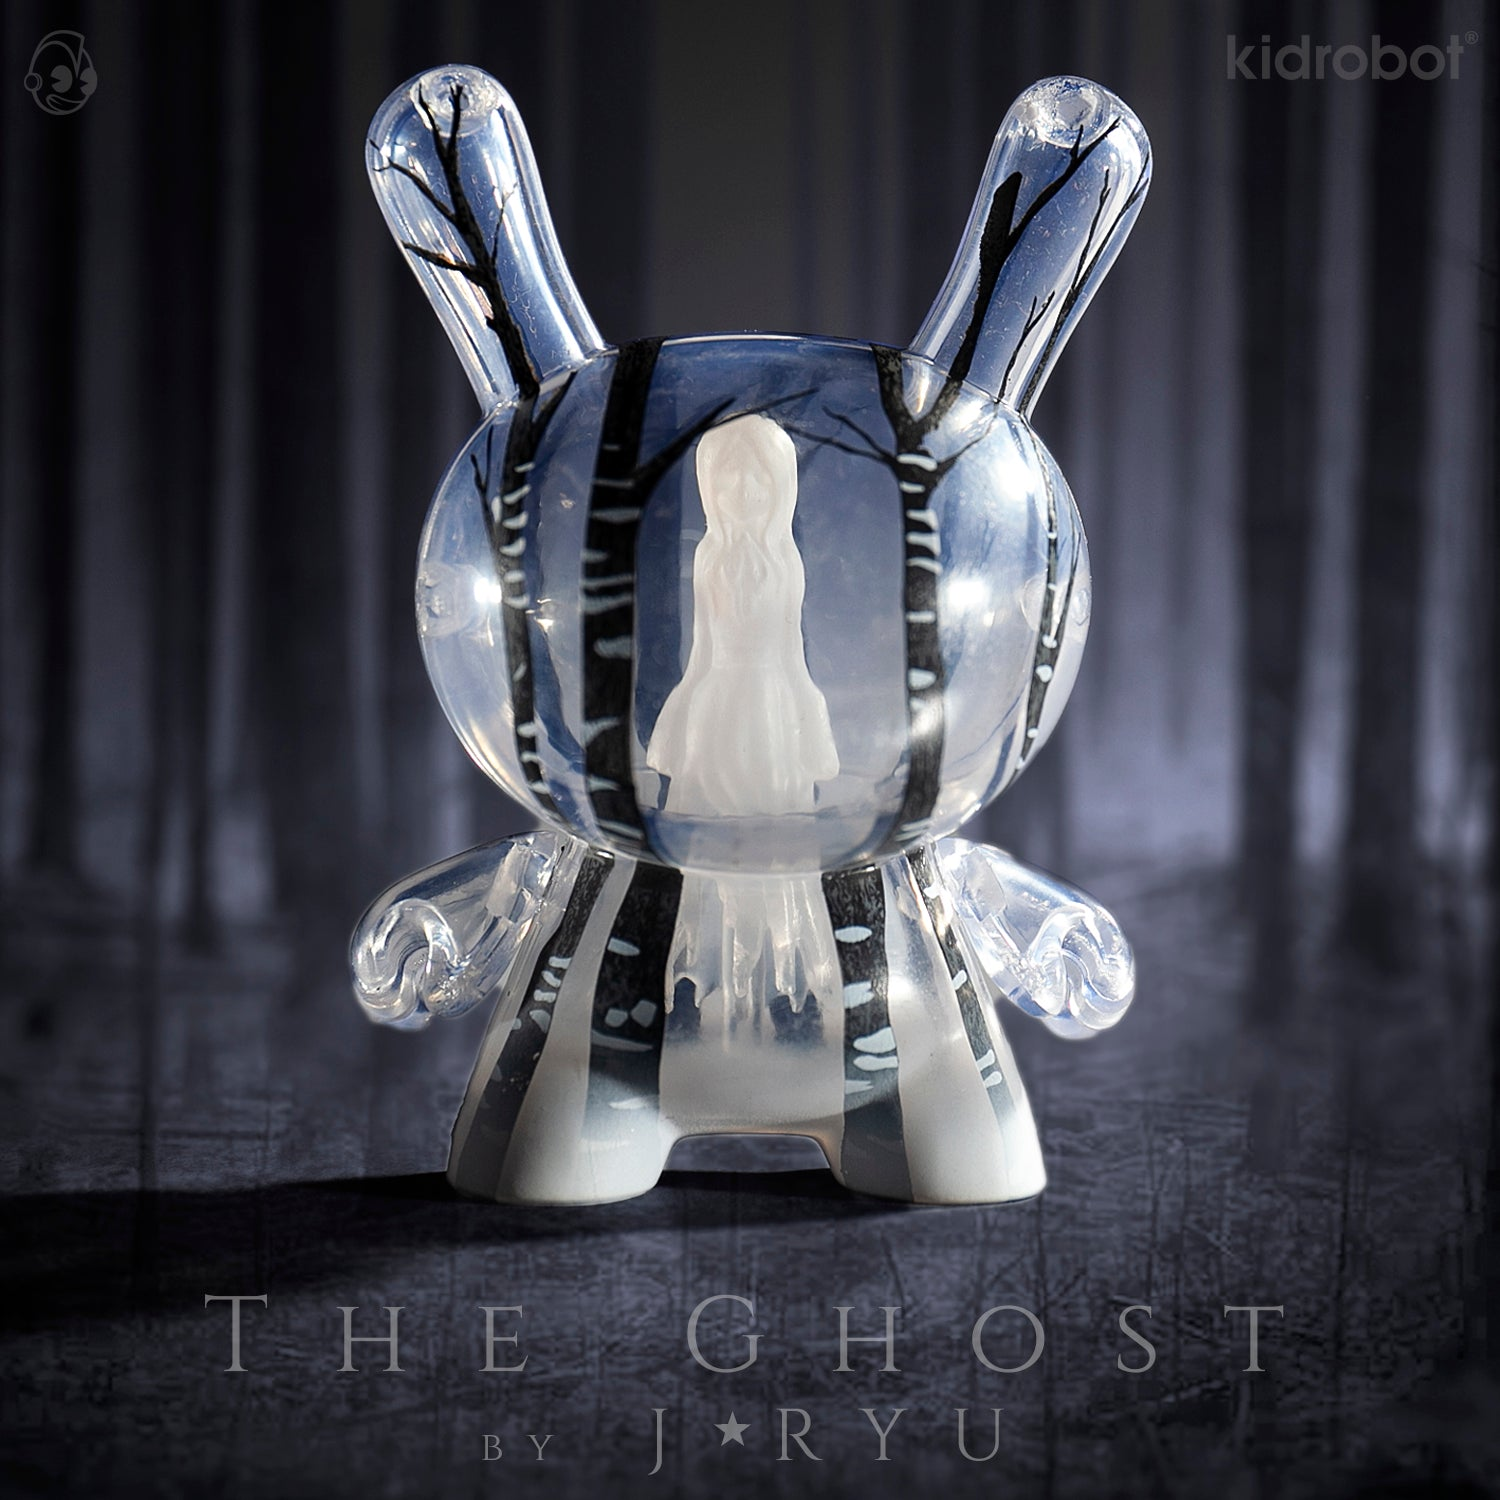 The Ghost Dunny by J*RYU - Arcane Divination The Lost Cards - Kidrobot